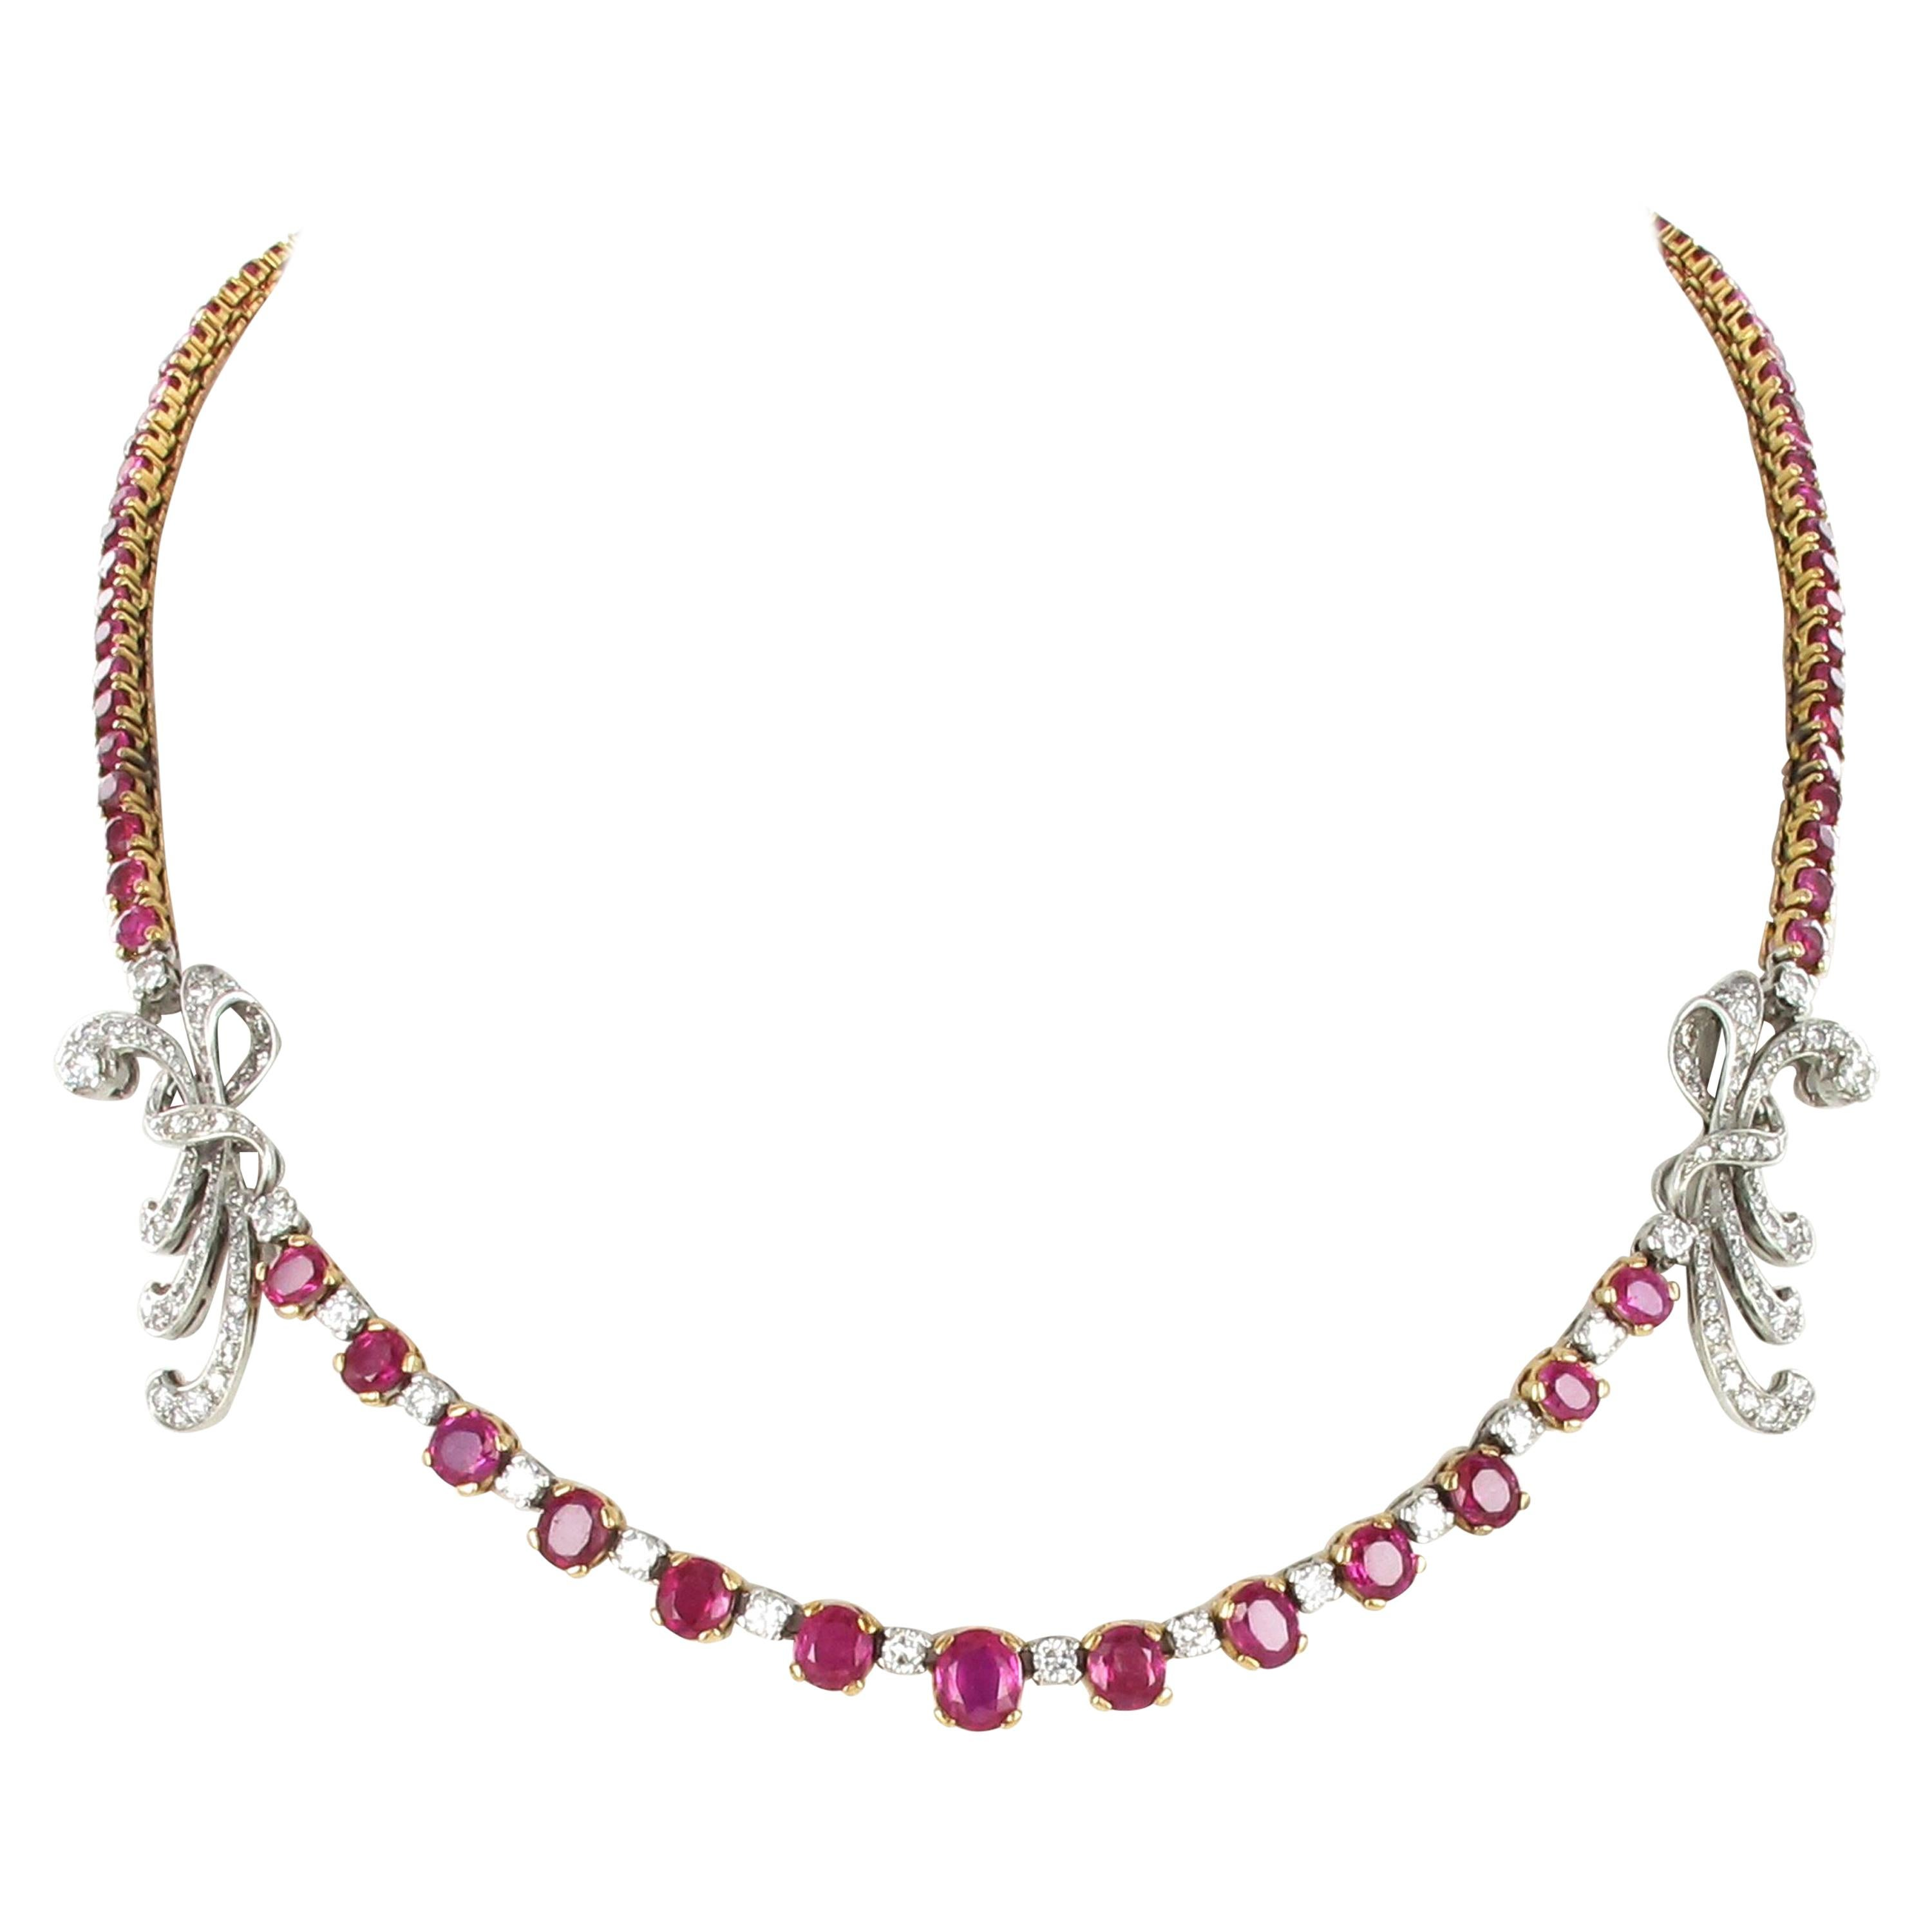 Gorgeous Burmese Ruby and Diamond Necklace in Platinum and 18 Karat Gold